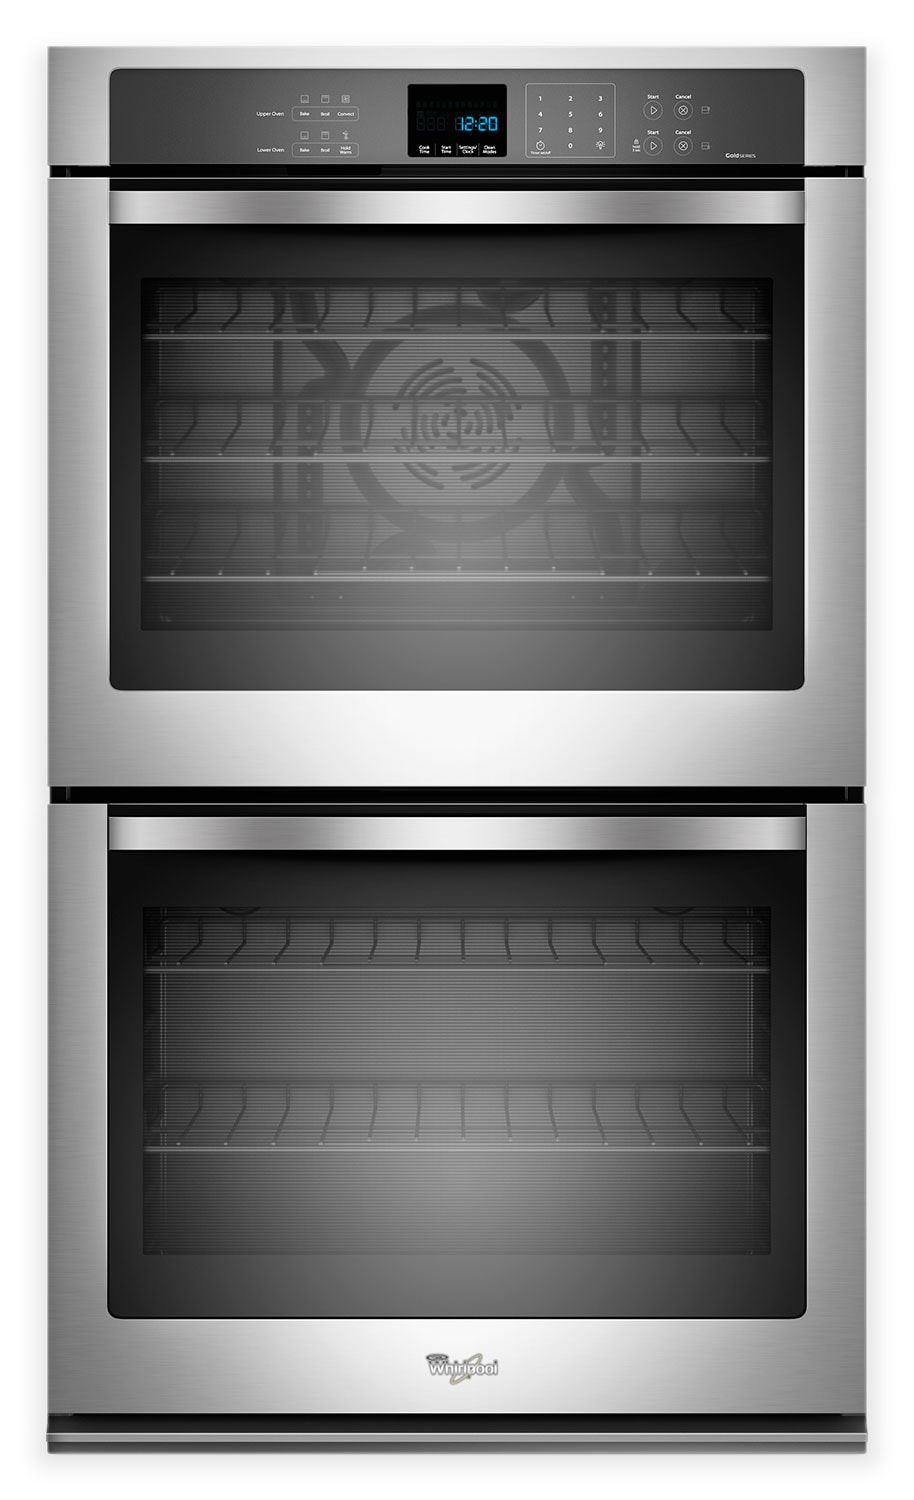 Whirlpool Gold® 10 Cu. Ft. Double Wall Oven – Stainless Steel